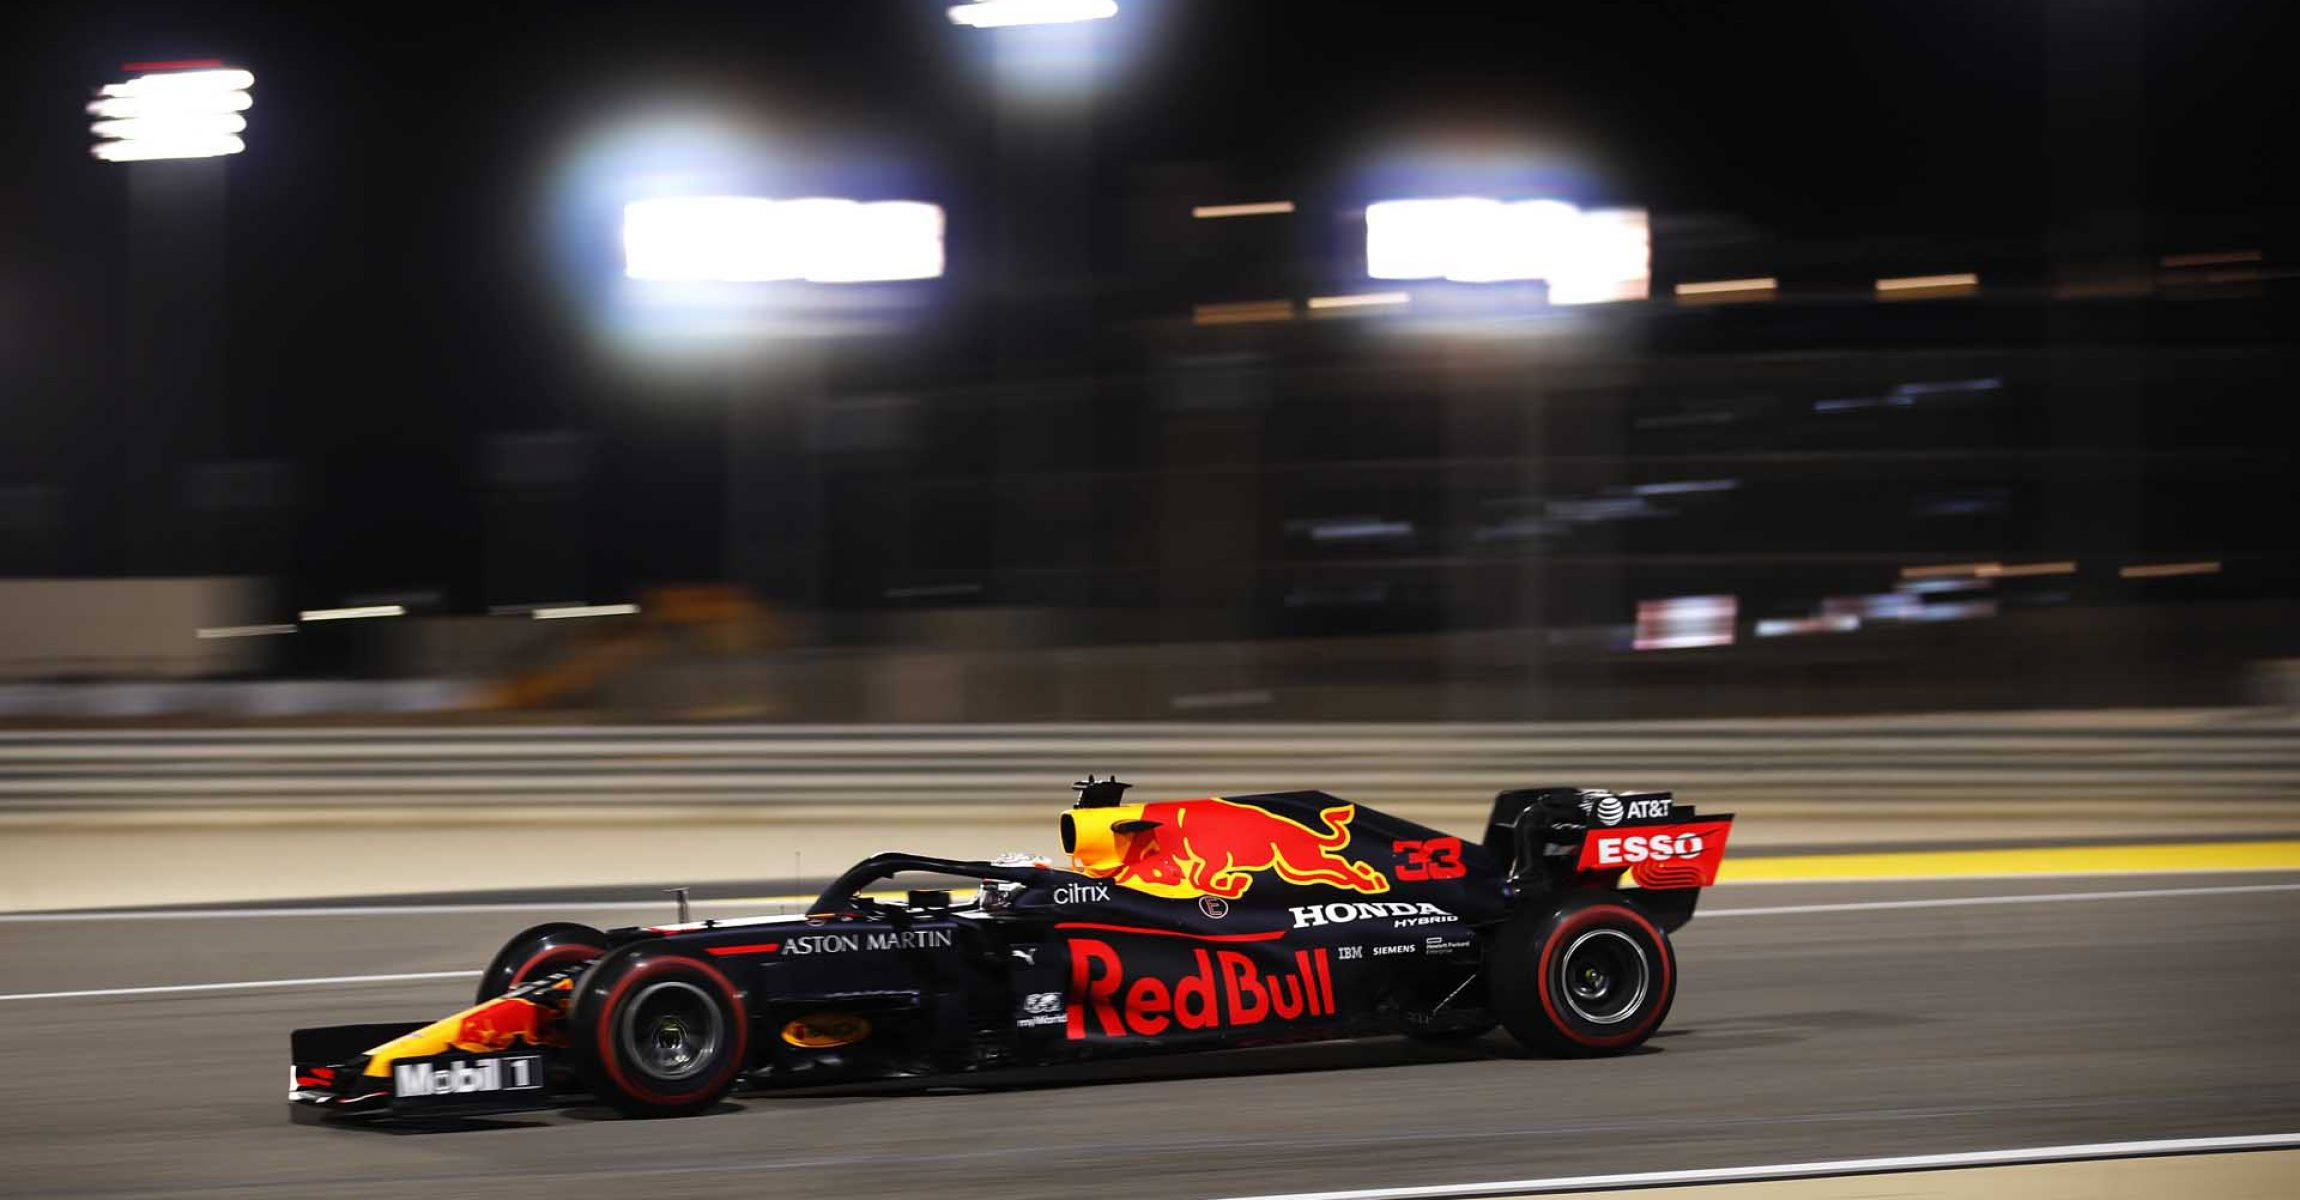 BAHRAIN, BAHRAIN - DECEMBER 04: Max Verstappen of the Netherlands driving the (33) Aston Martin Red Bull Racing RB16 on track during practice ahead of the F1 Grand Prix of Sakhir at Bahrain International Circuit on December 04, 2020 in Bahrain, Bahrain. (Photo by Hamad I Mohammed - Pool/Getty Images)